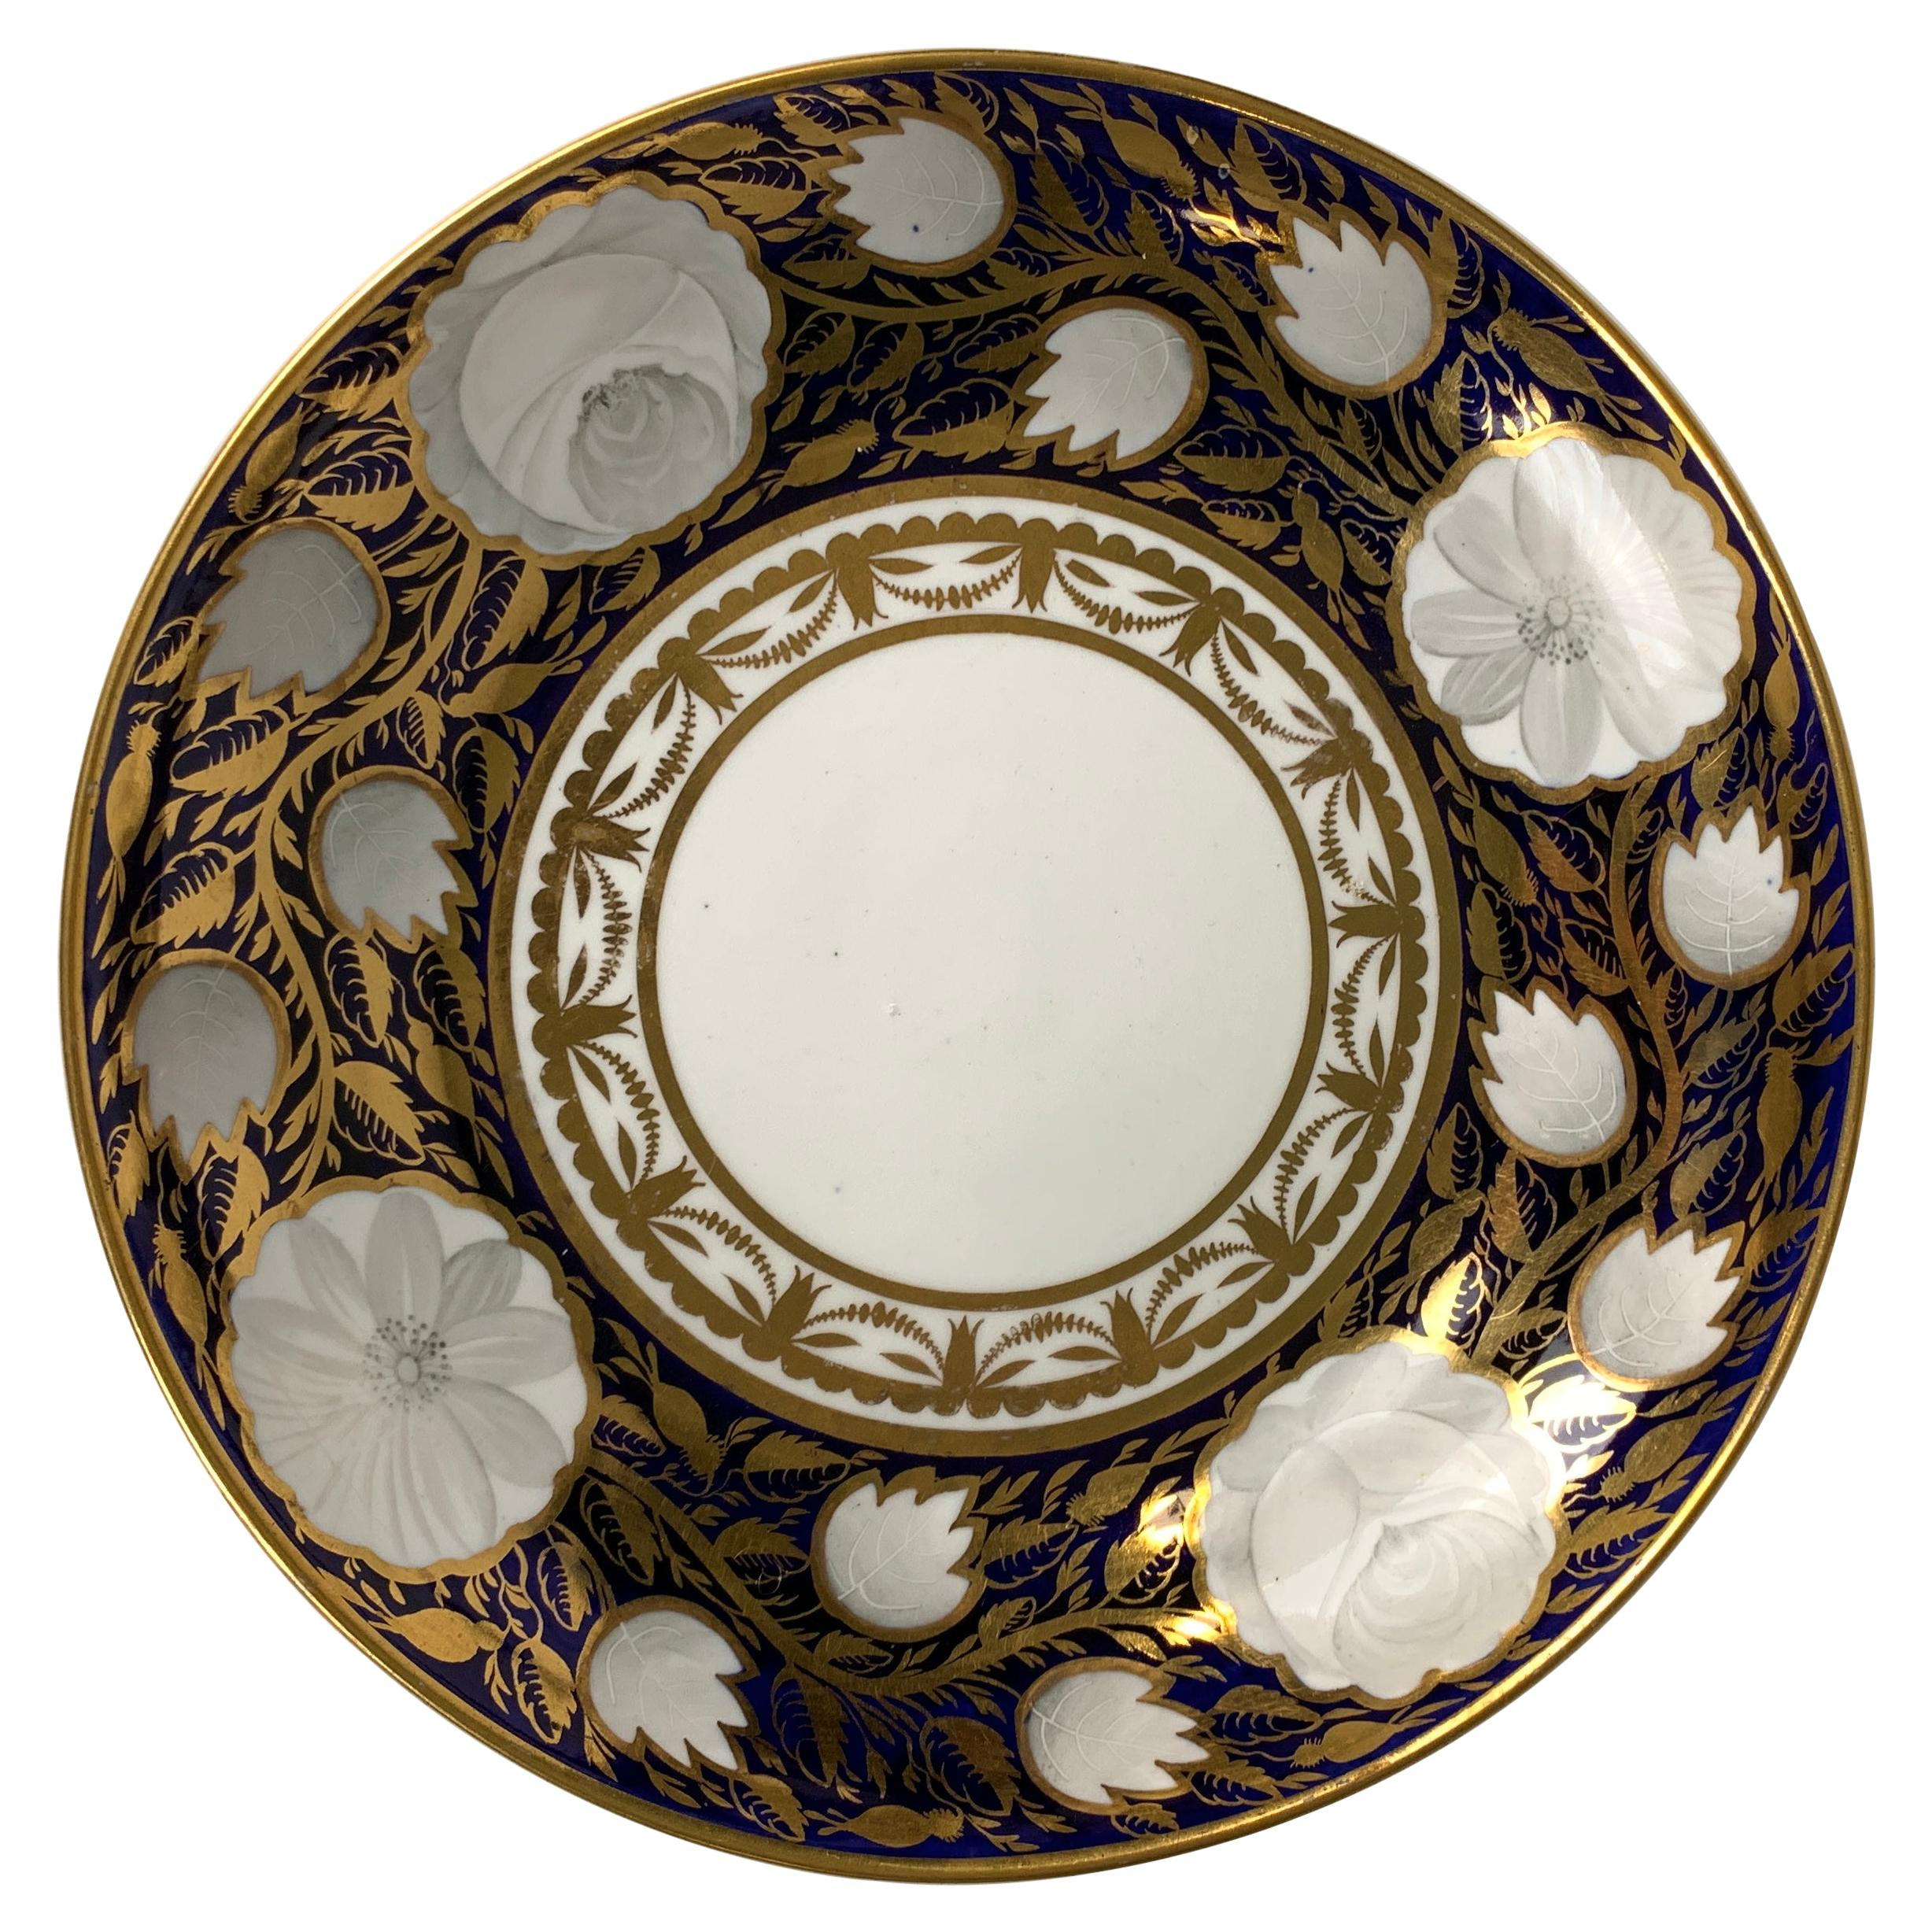 Blue and White and Gold Dish Made in England by Spode, Circa 1820